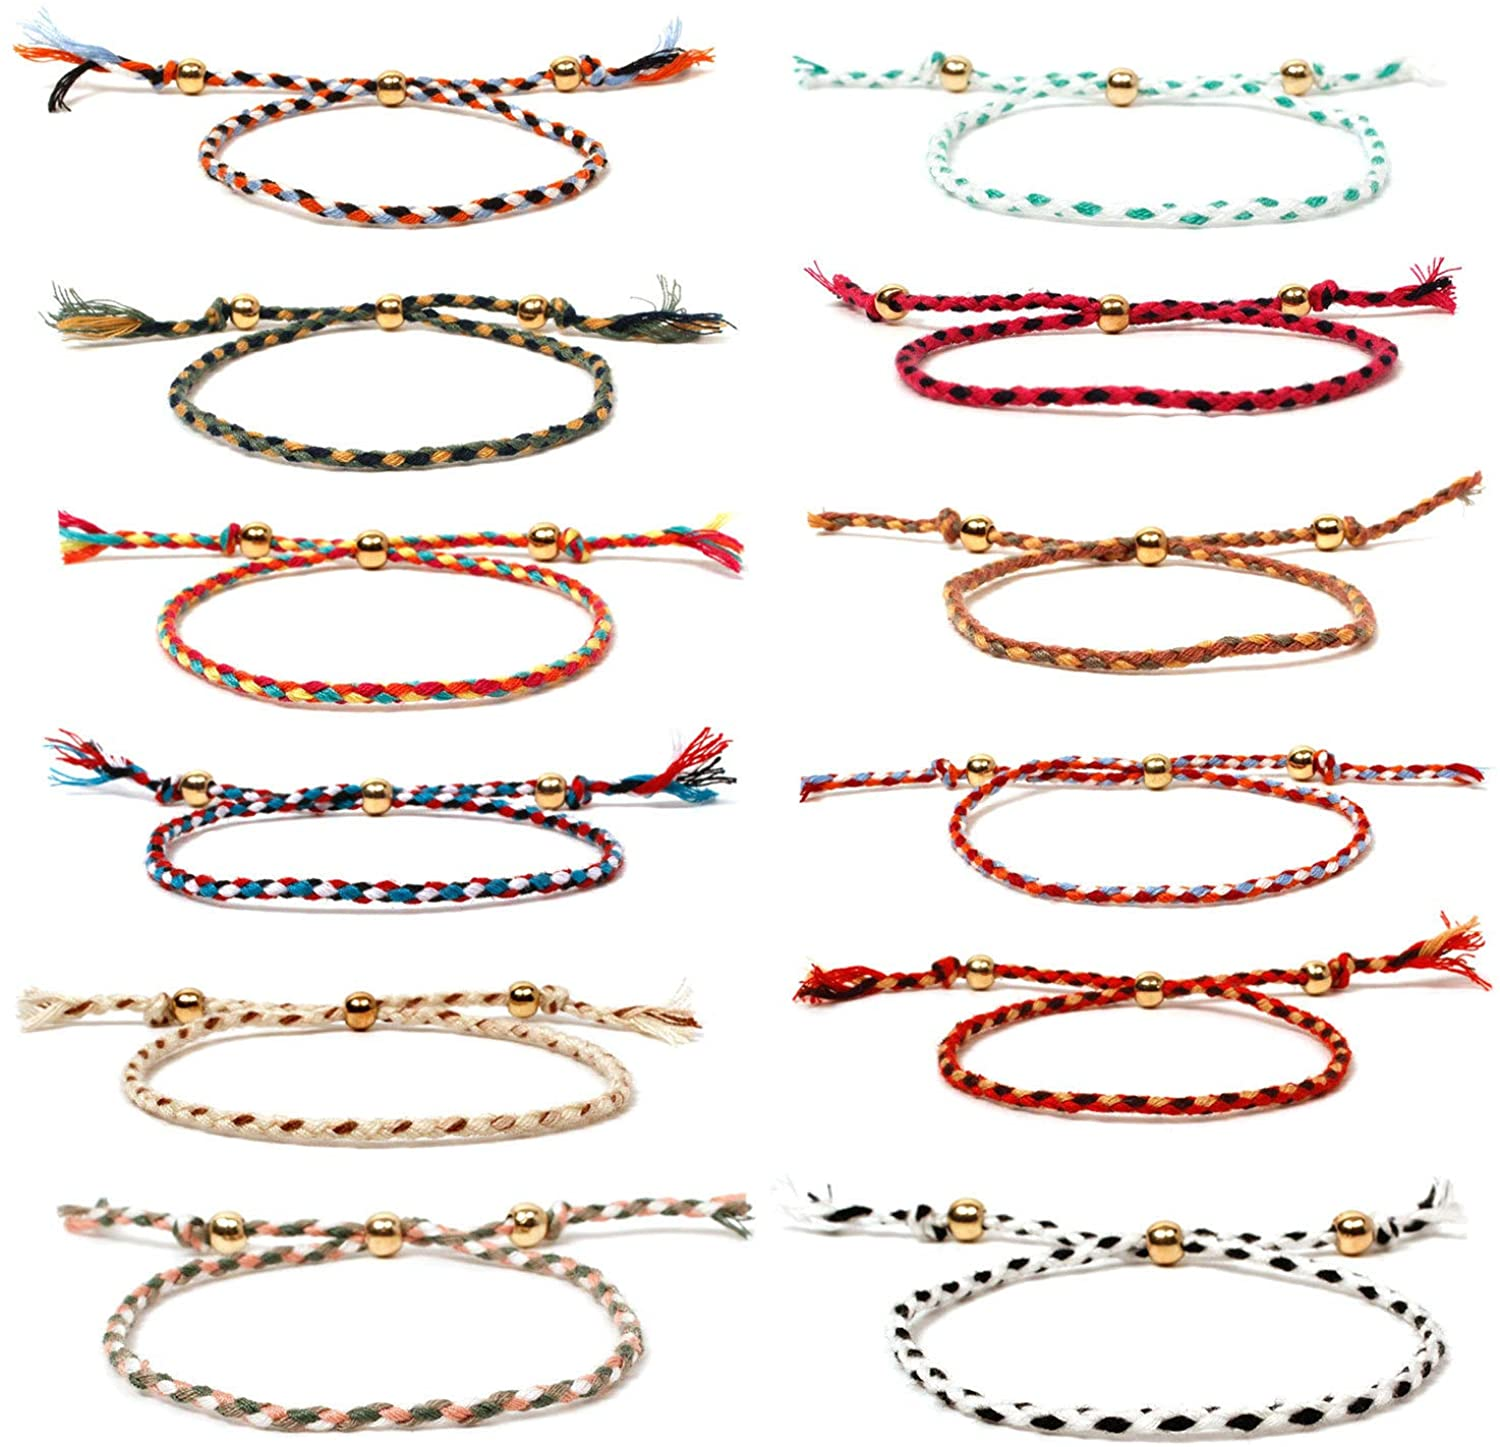 Boho Friendship Handmade Rope Multiple Woven Cotton Thread Wrap Bracelet Set Colorful Wrist Cord Adjustable Handmade String Wish Skinny Braided Charm Bracelets for Women Jewelry